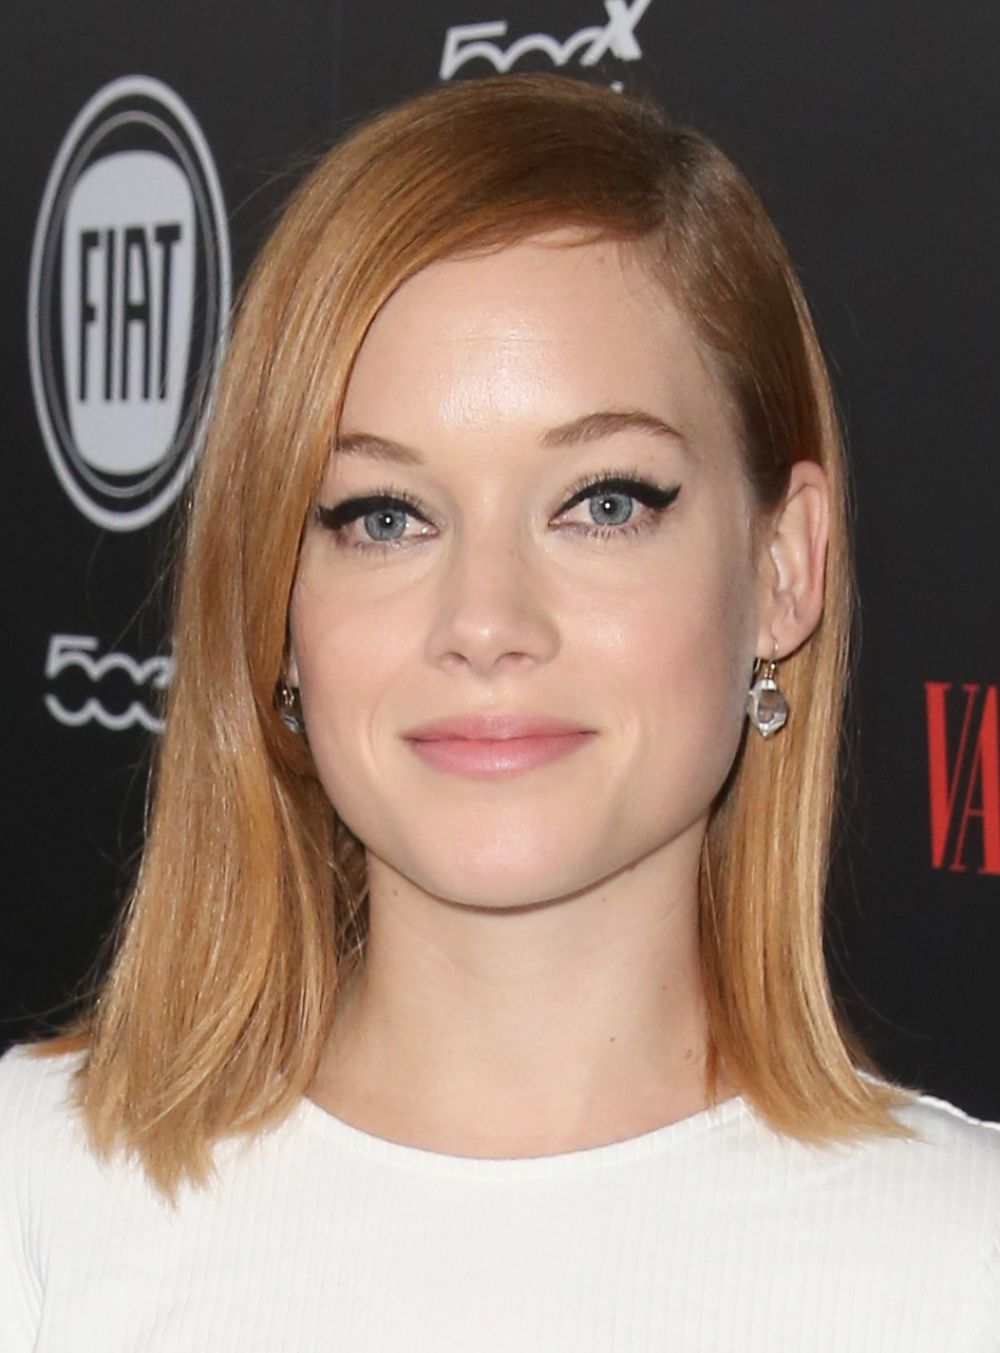 JANE LEVY at Vanity Fair and Fiat Young Hollywood Celebration in Los Angeles 02/23/2016